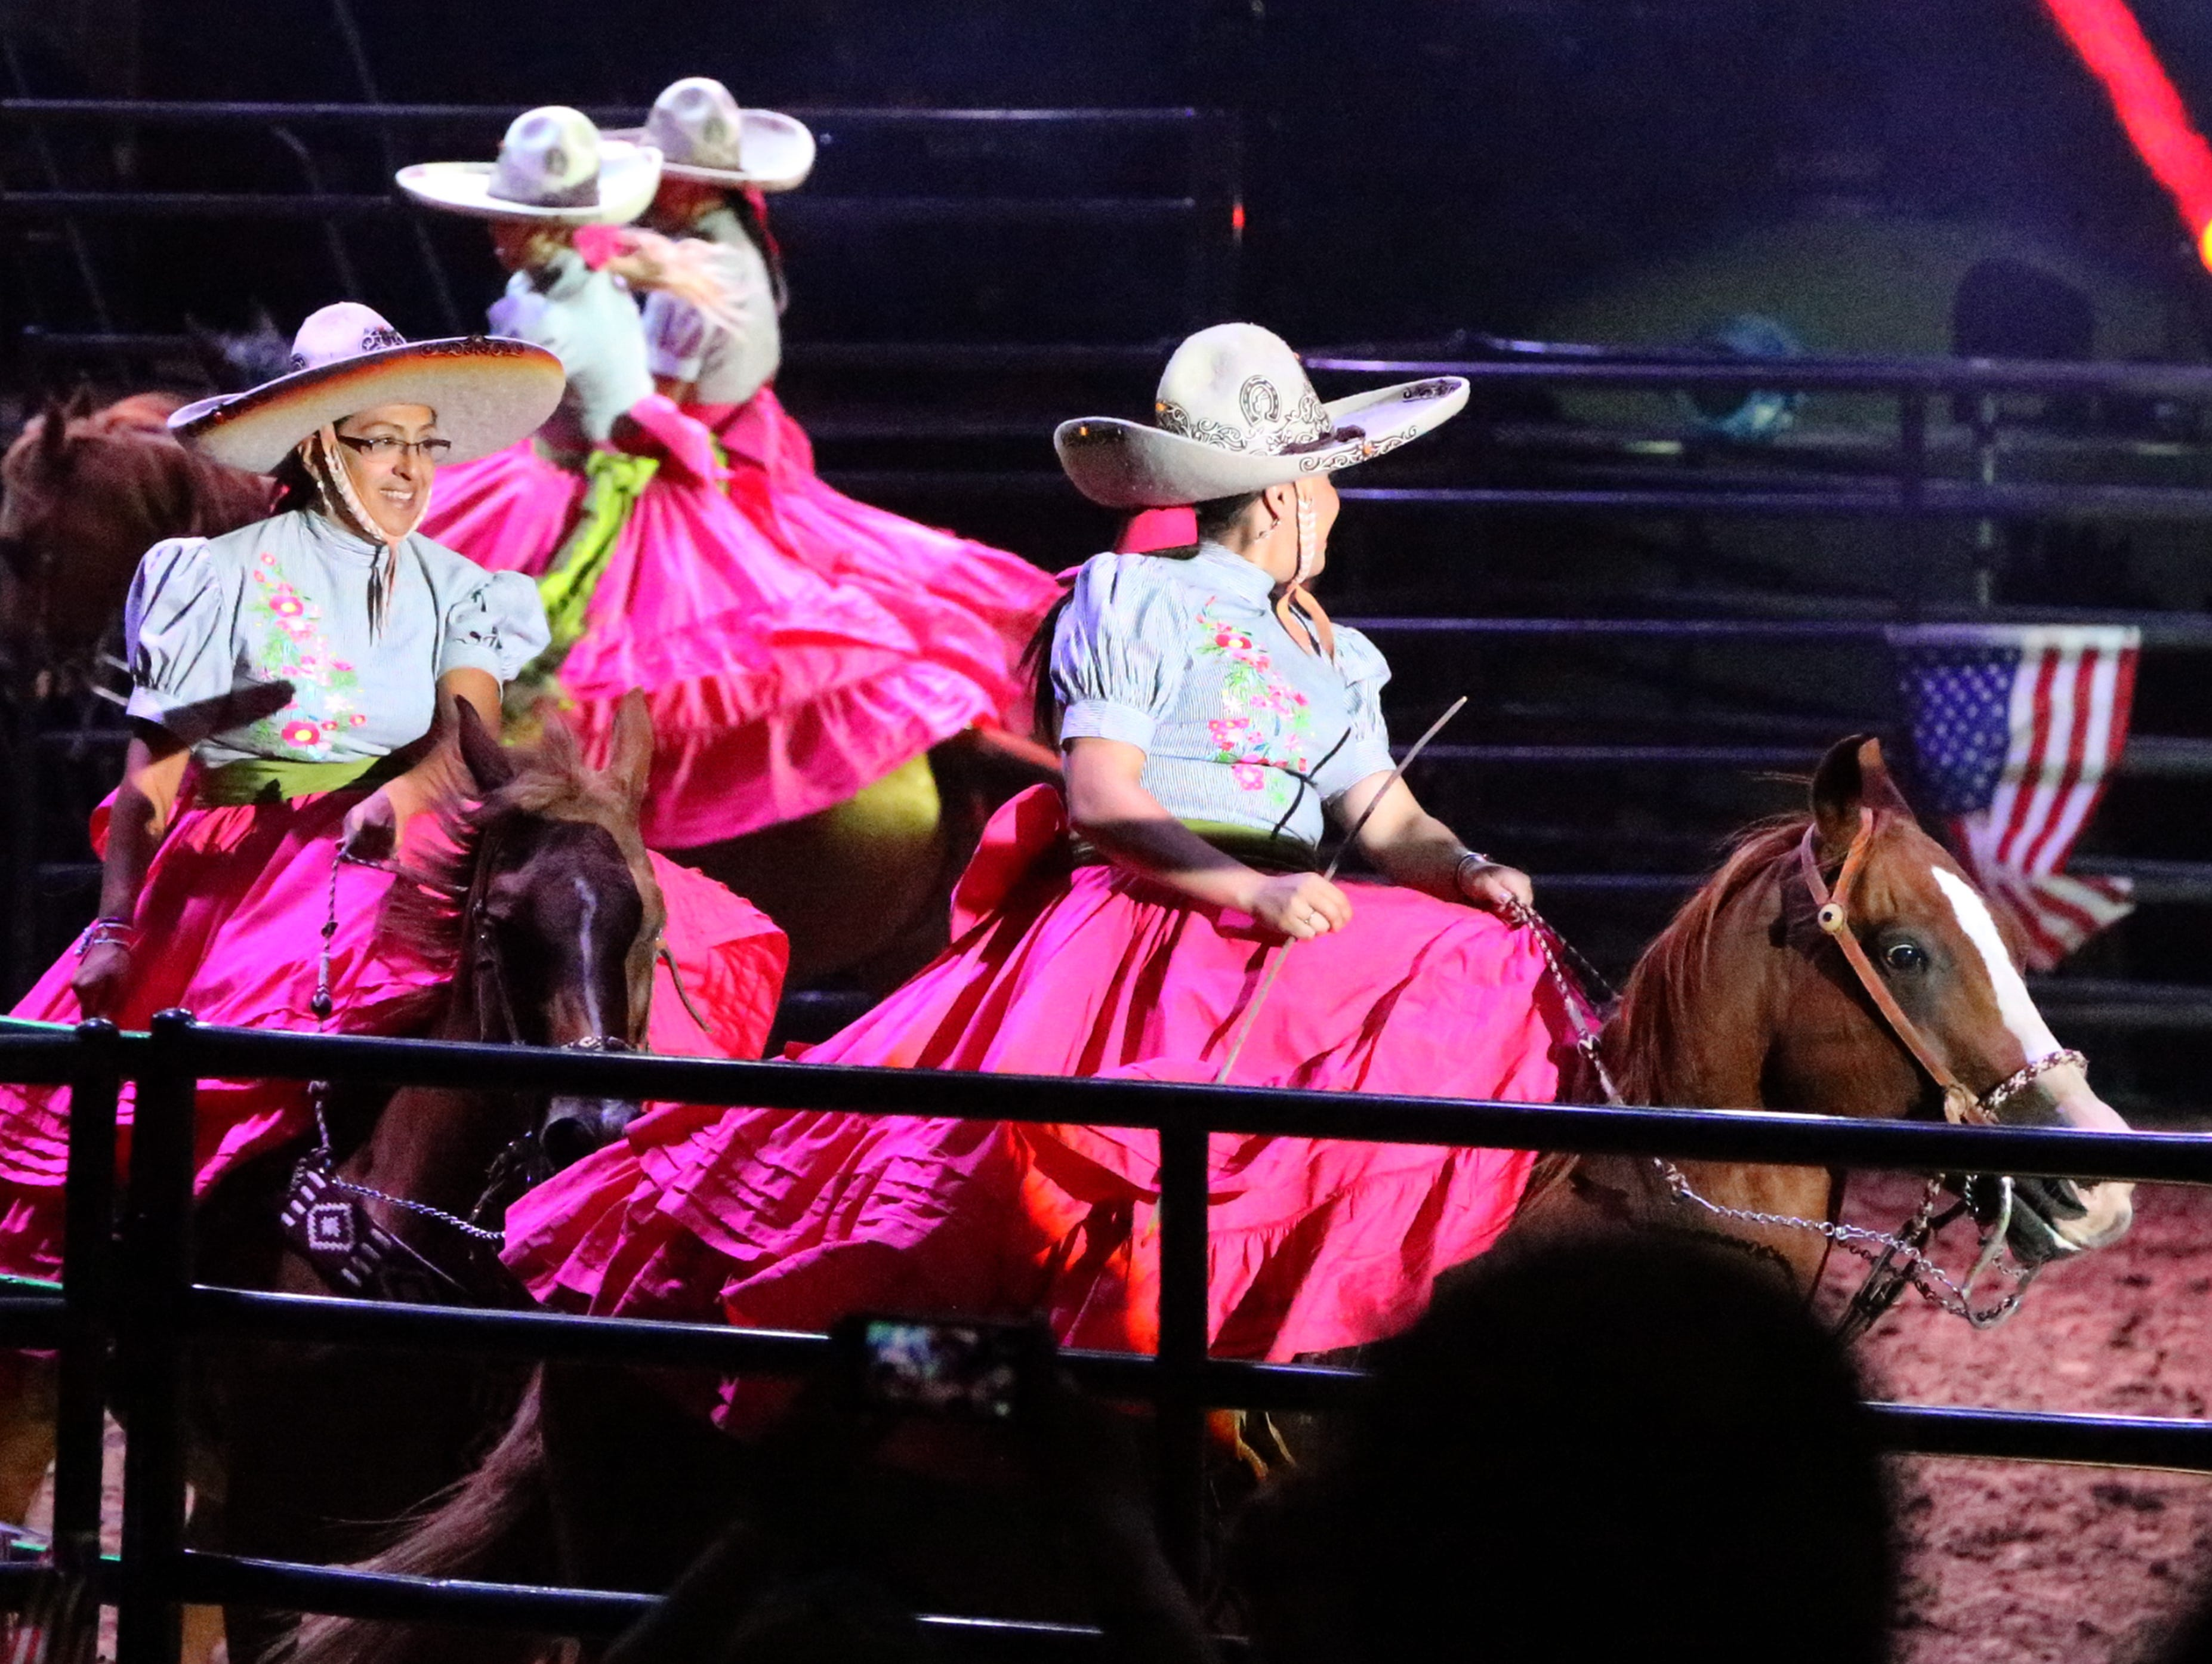 An all-female riding group work a series of maneuvers Saturday night.